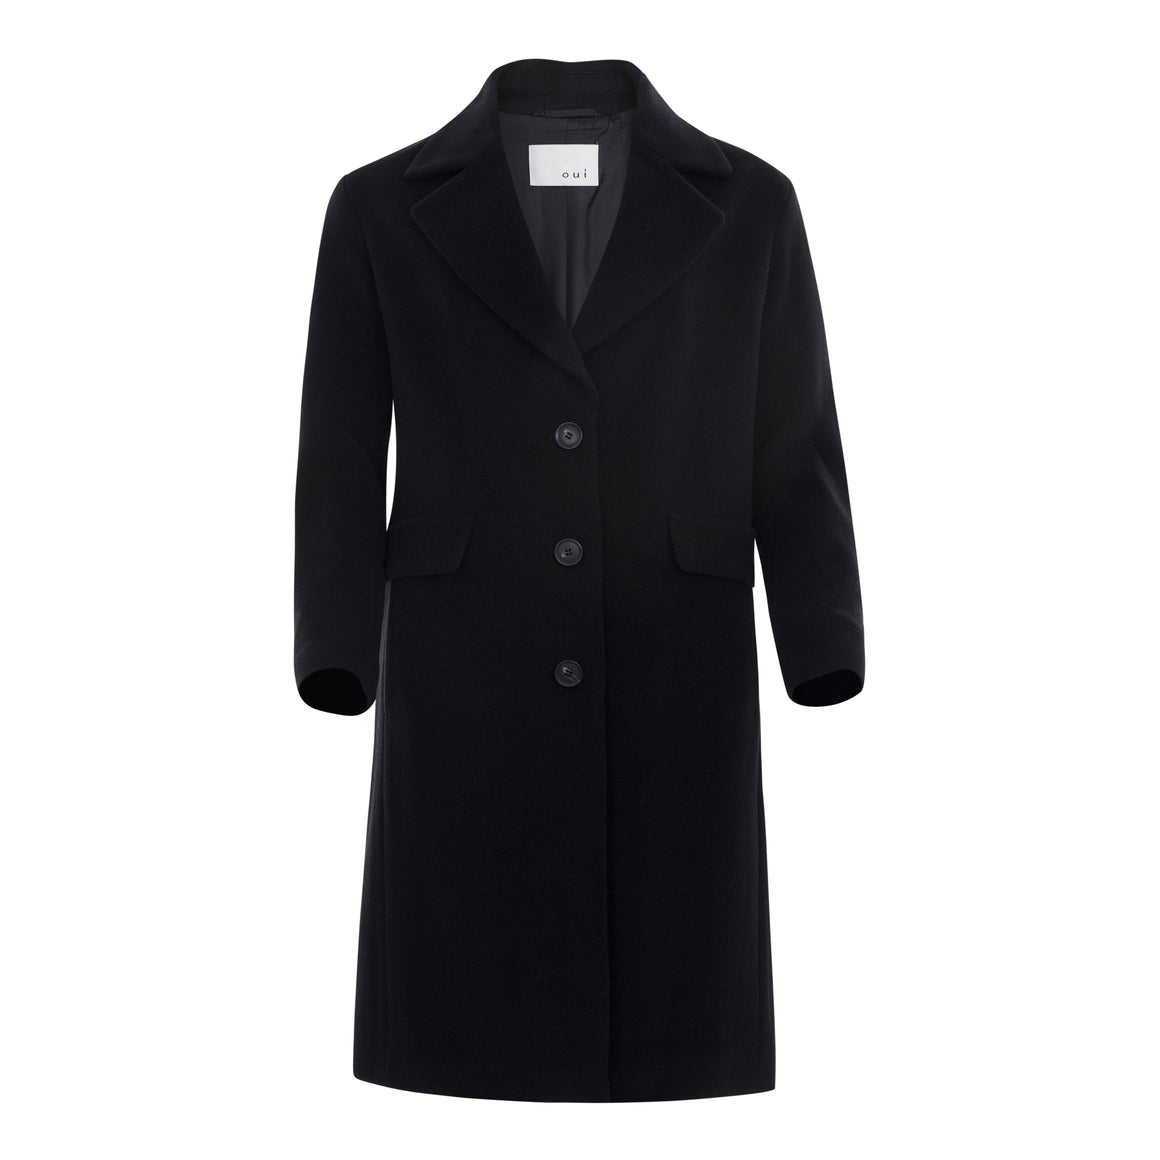 Wool/Cashmere Coat for Women in Black